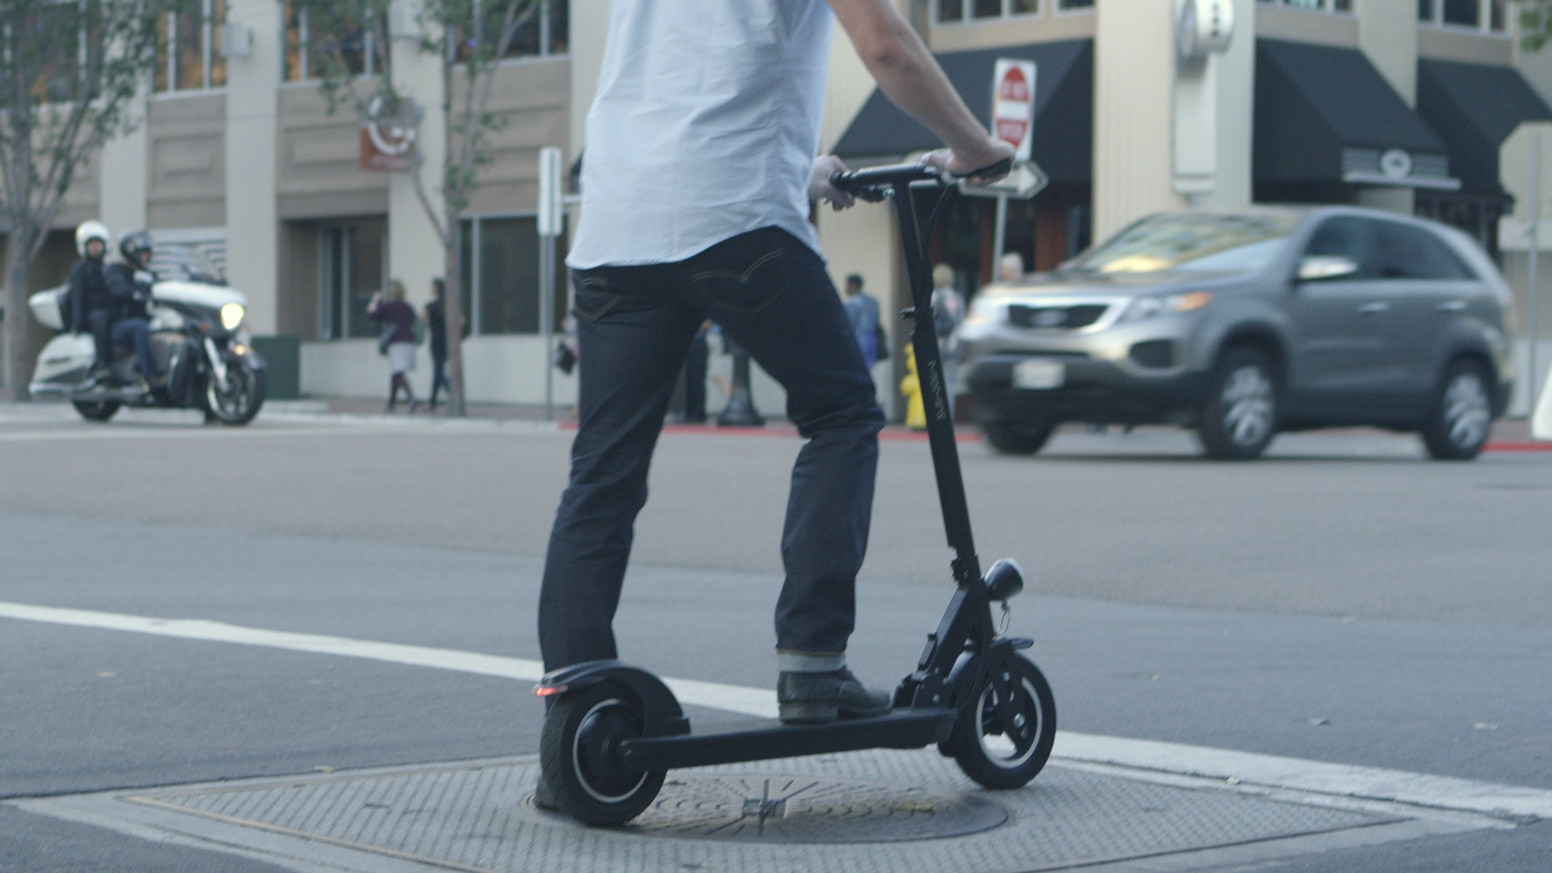 """Lightweight and Portable, the Momas e-Scooter is comfortable at speeds up to 20 mph, thanks to its 350W motor, Li Battery & 10"""" tires."""